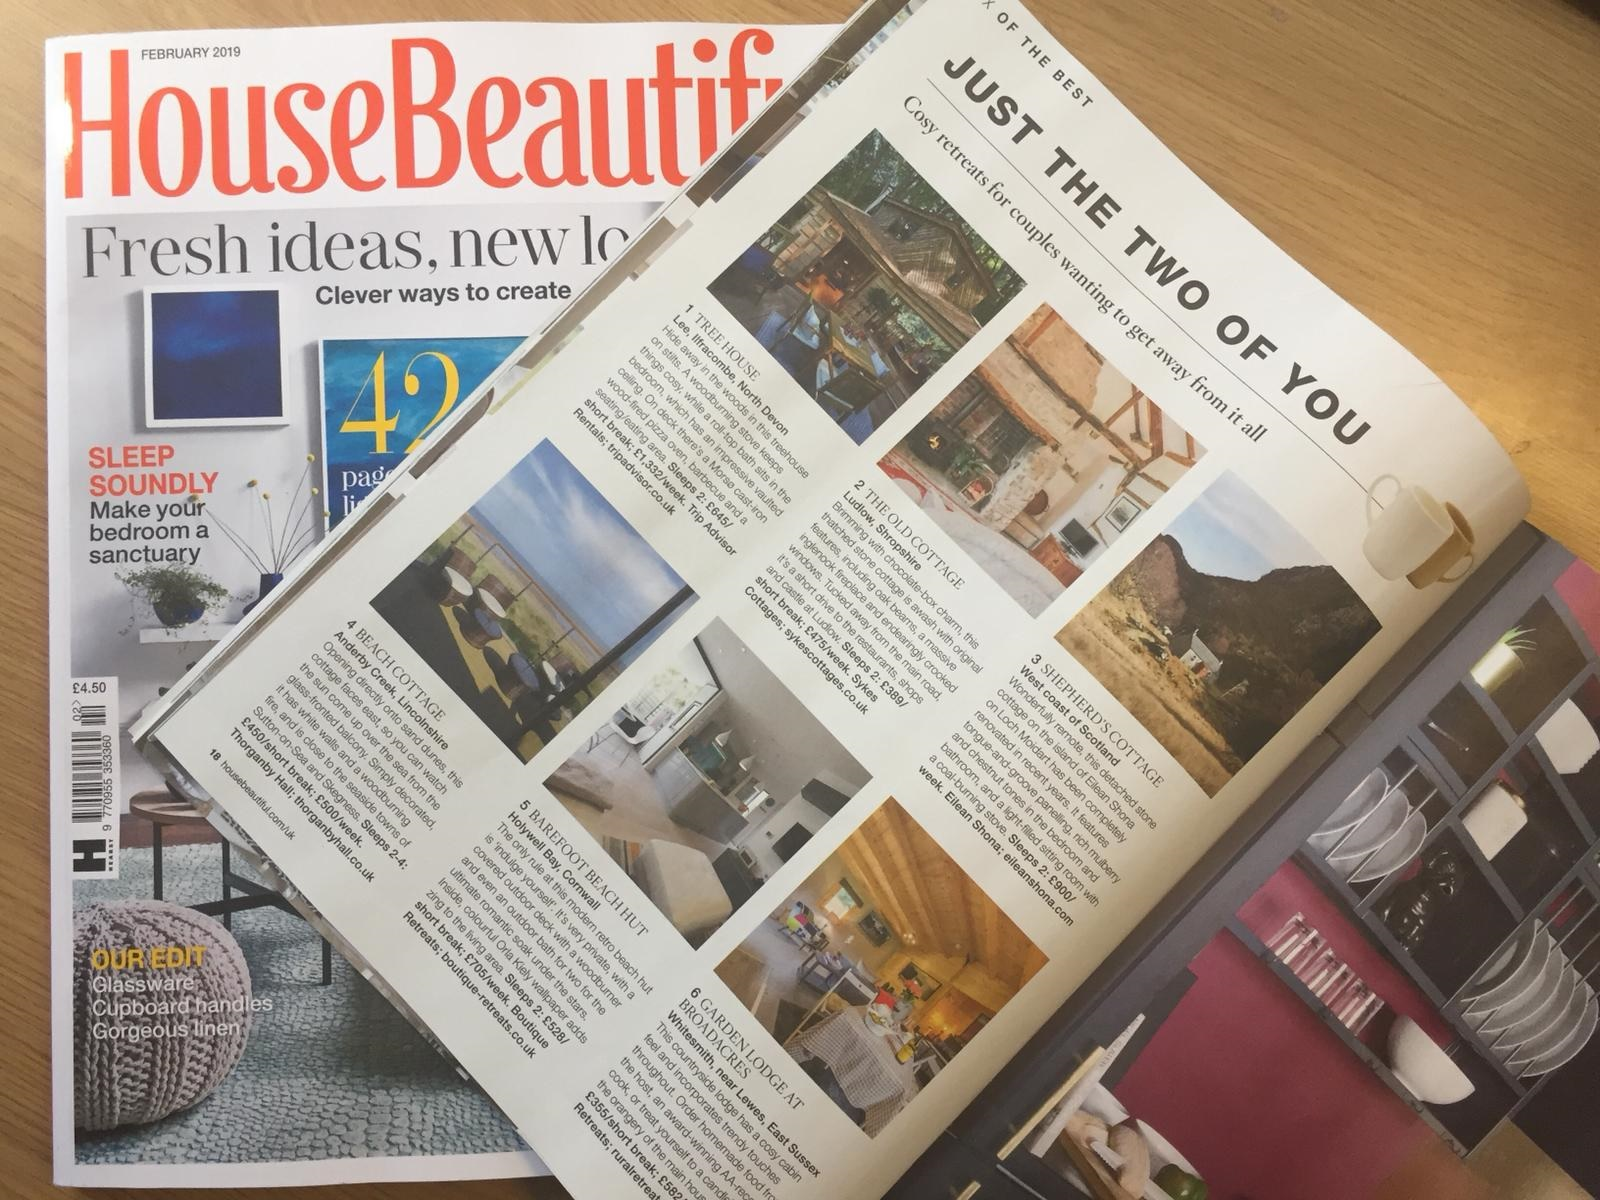 House Beautiful - February 2019